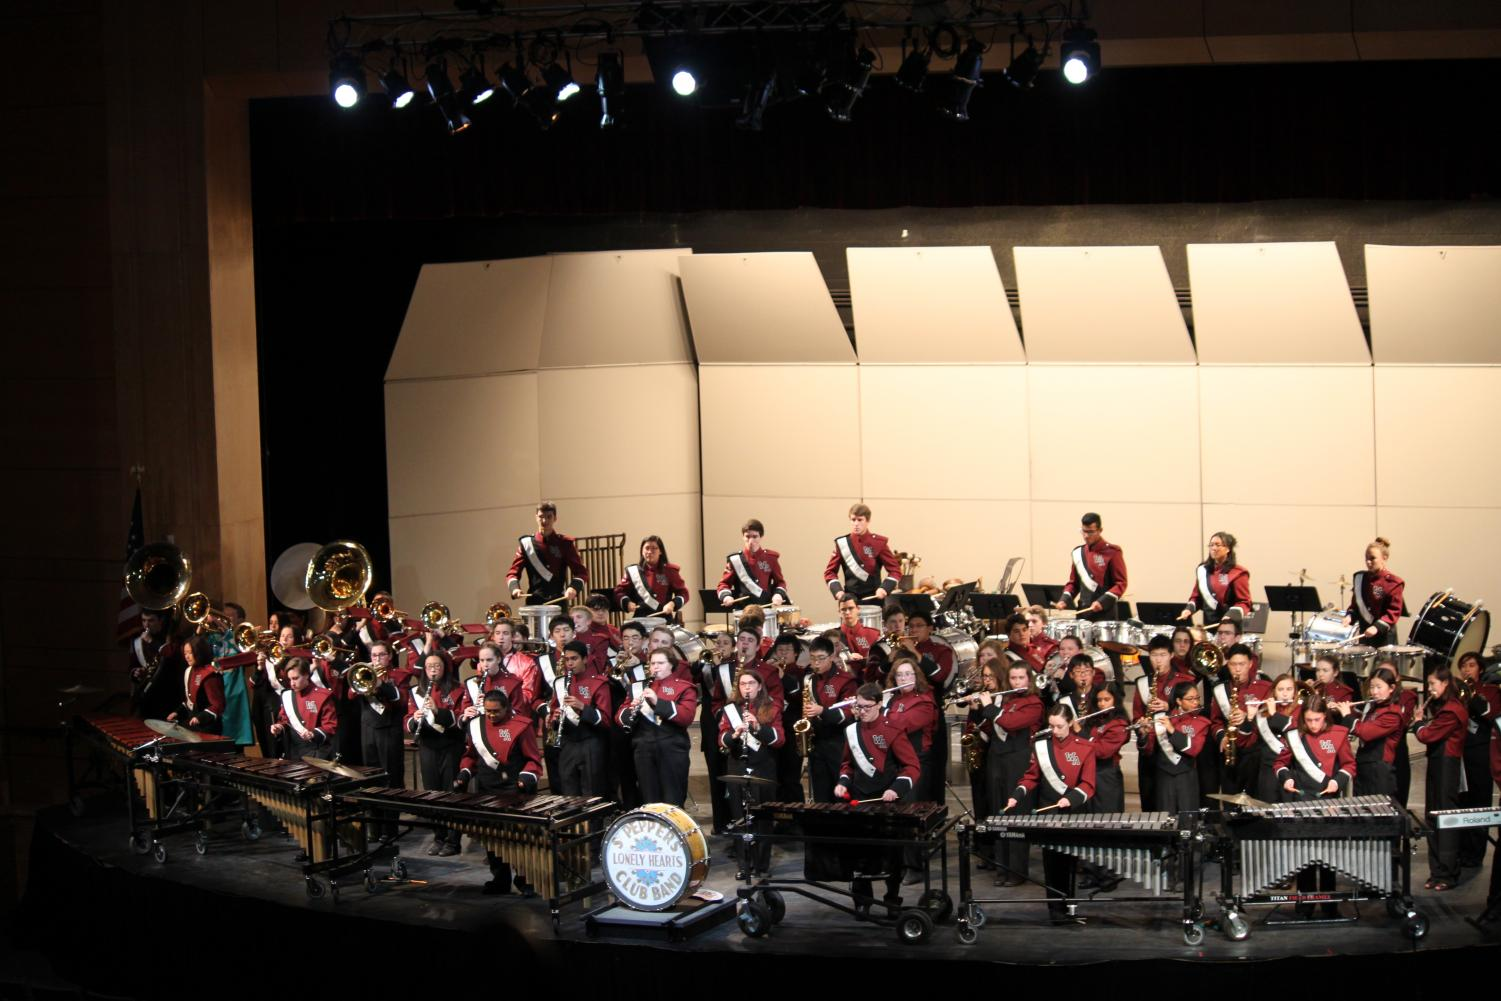 The+WA+Marching+Band+opens+the+show+with+%27Sgt.+Pepper%27.